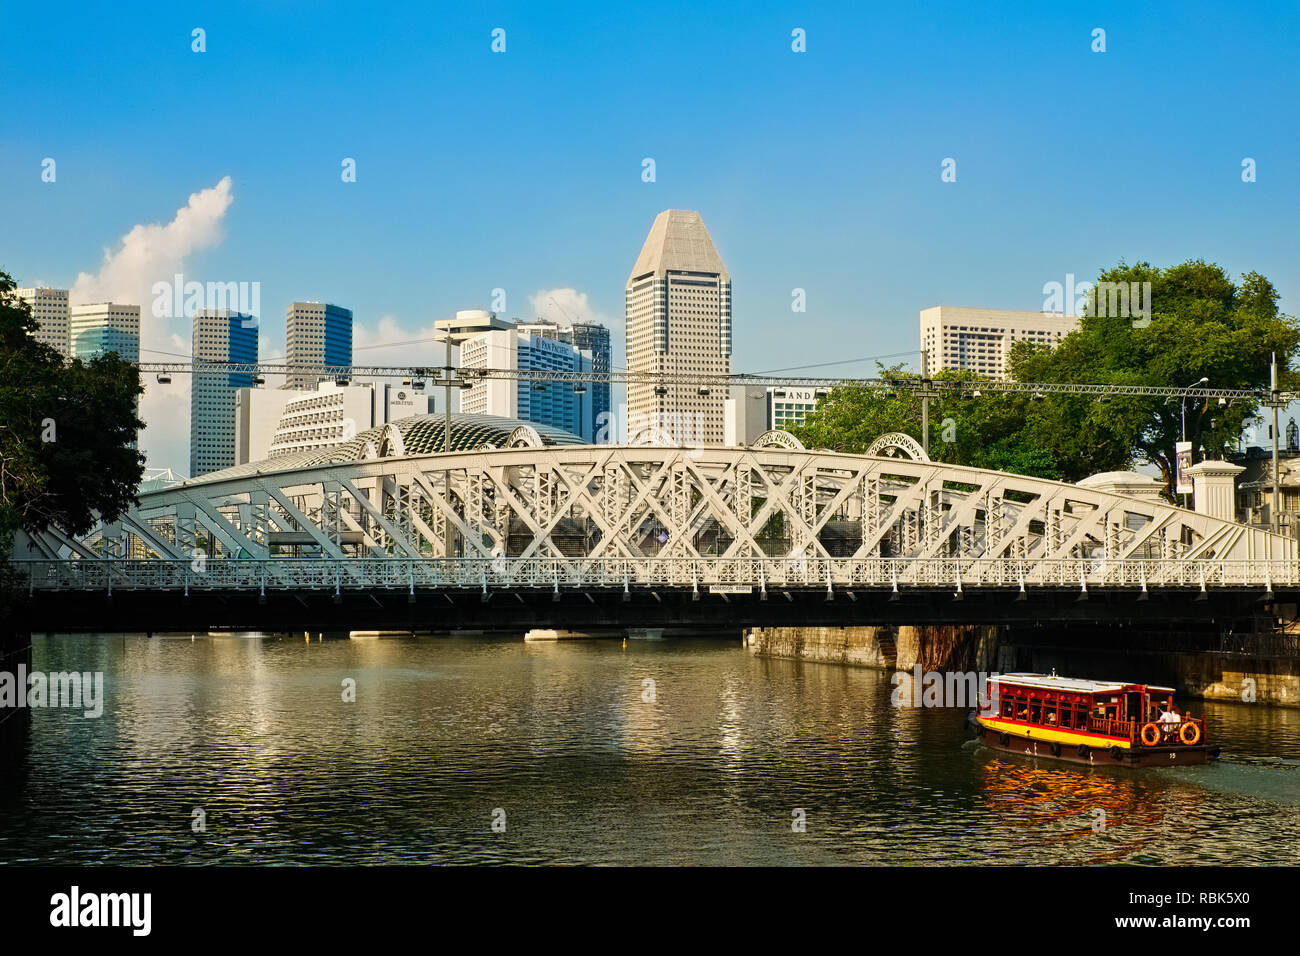 View over the Singapore River, Singapore, towards Anderson Bridge; seen from Cavenagh Bridge next to Fullerton Hotel - Stock Image